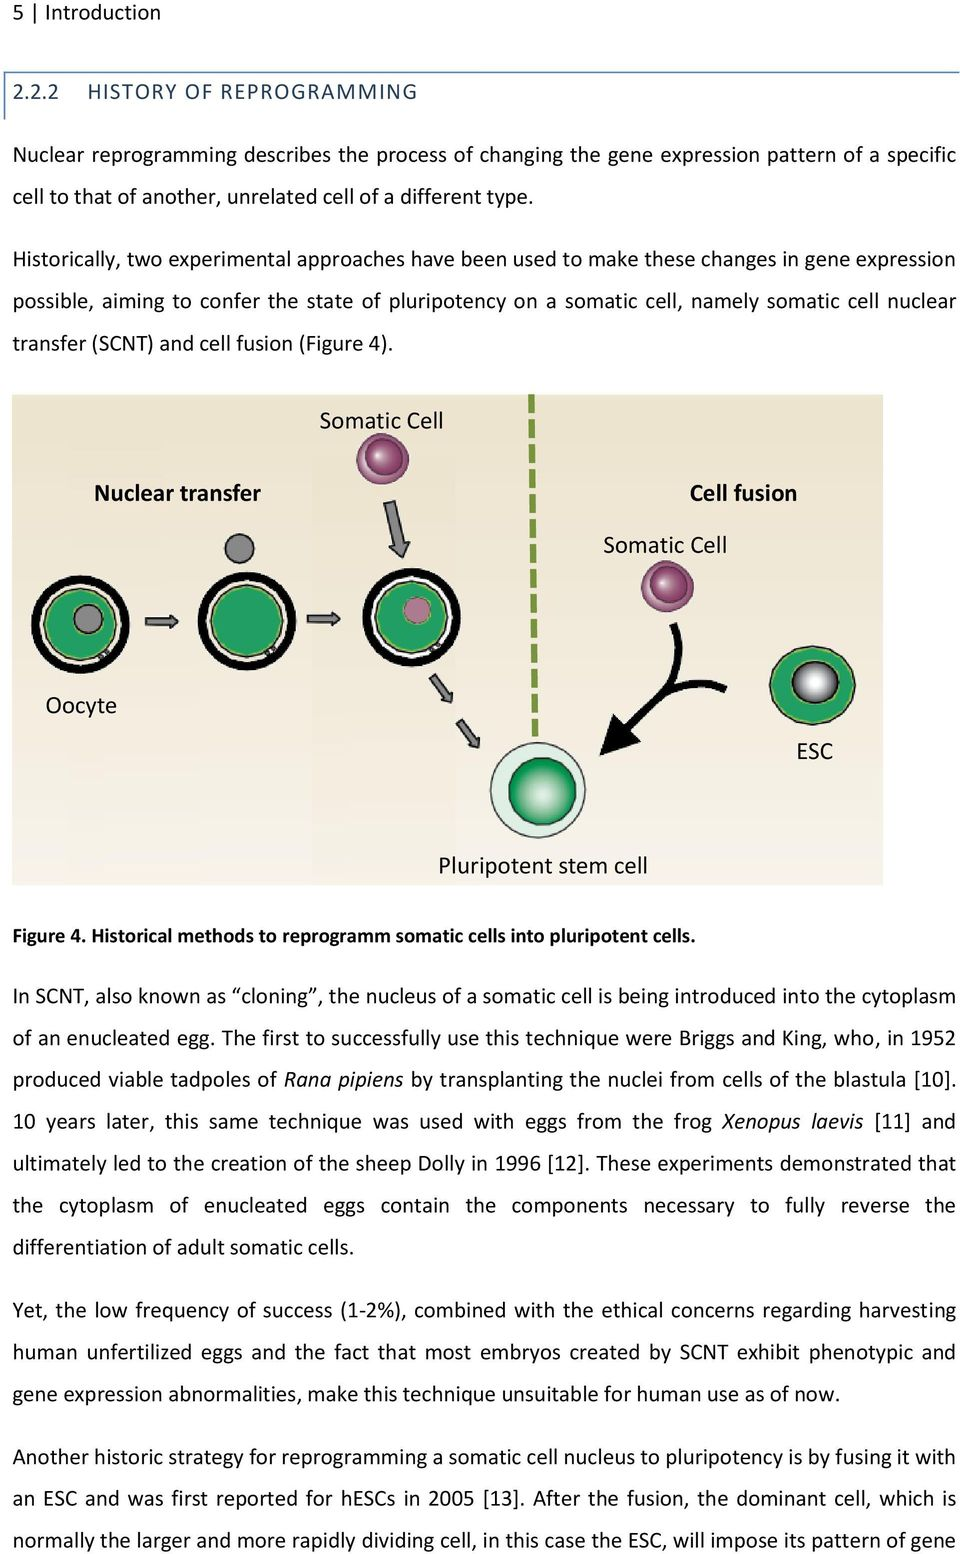 Historically, two experimental approaches have been used to make these changes in gene expression possible, aiming to confer the state of pluripotency on a somatic cell, namely somatic cell nuclear